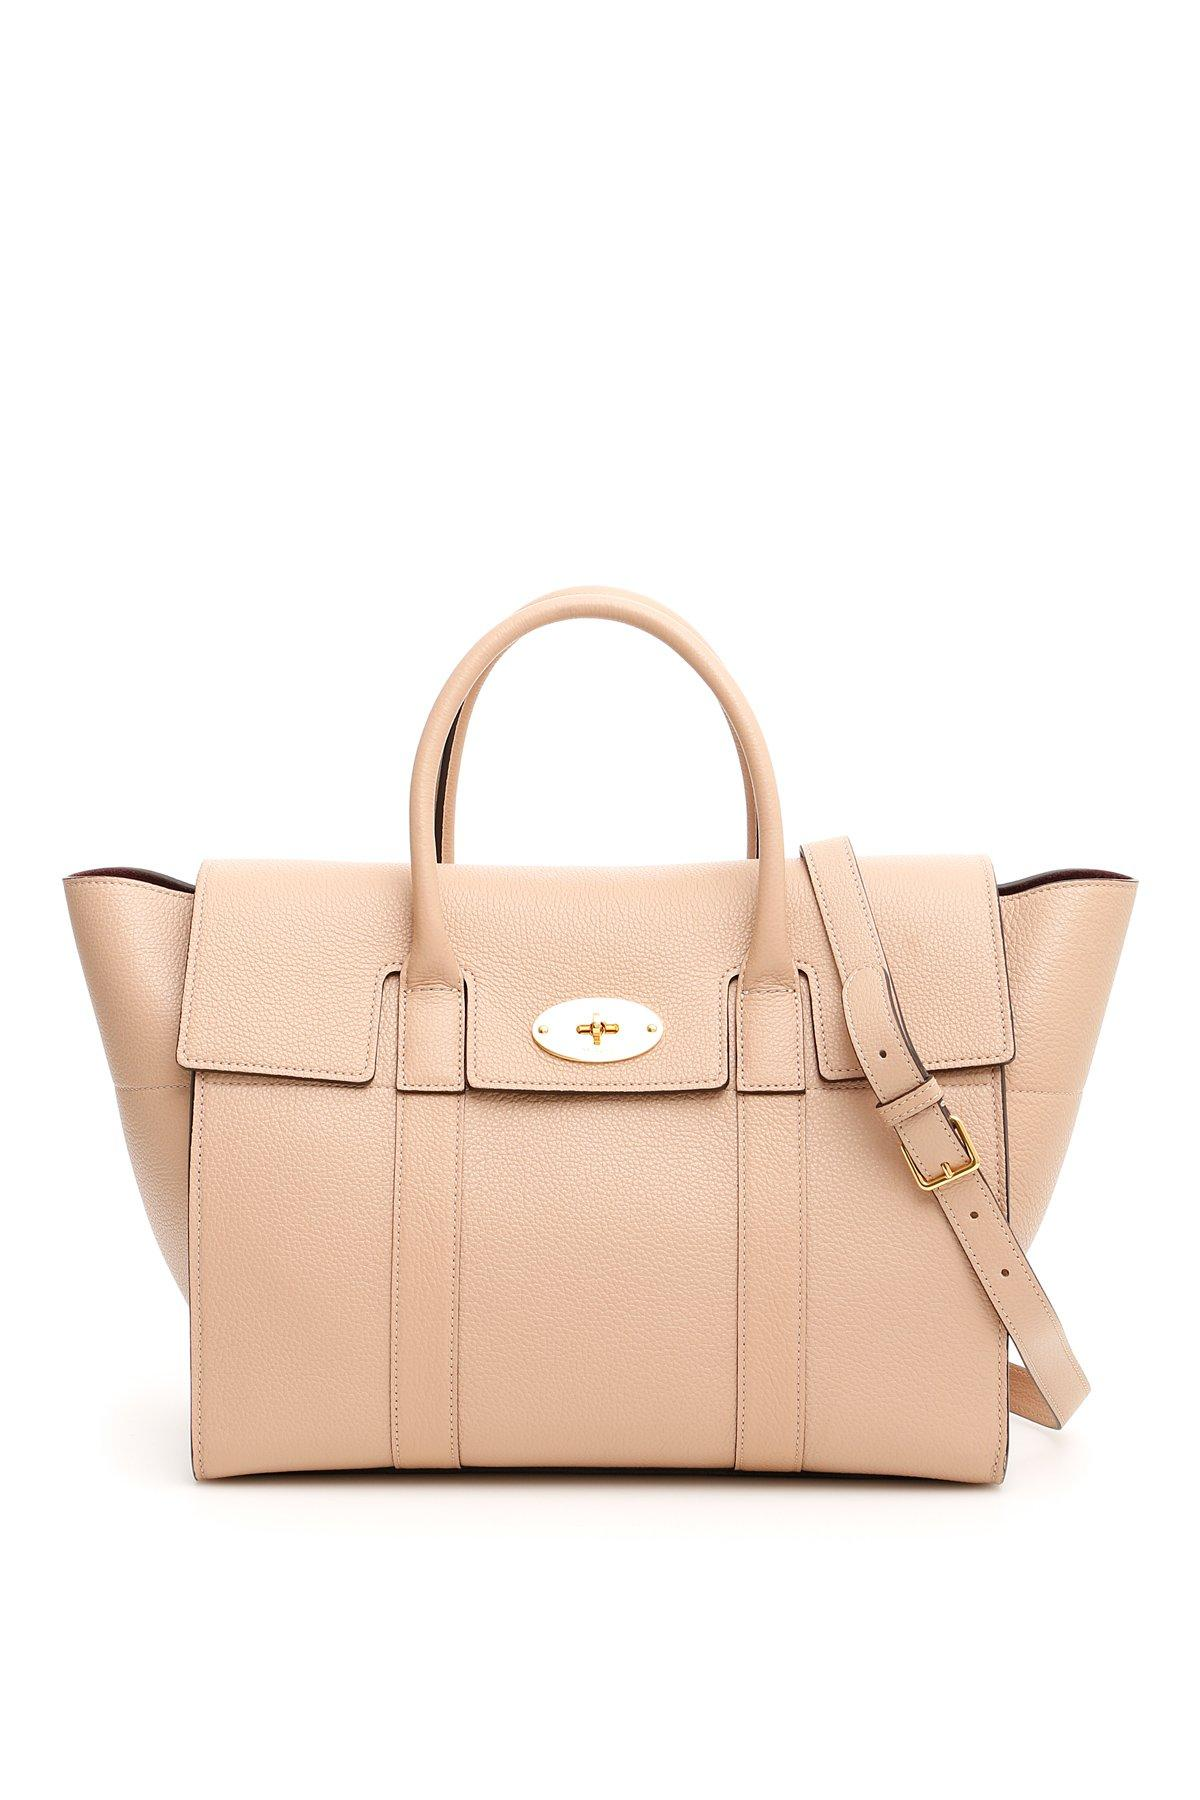 Lyst - Mulberry Small Bayswater Bag in Pink e2fcafed8516f